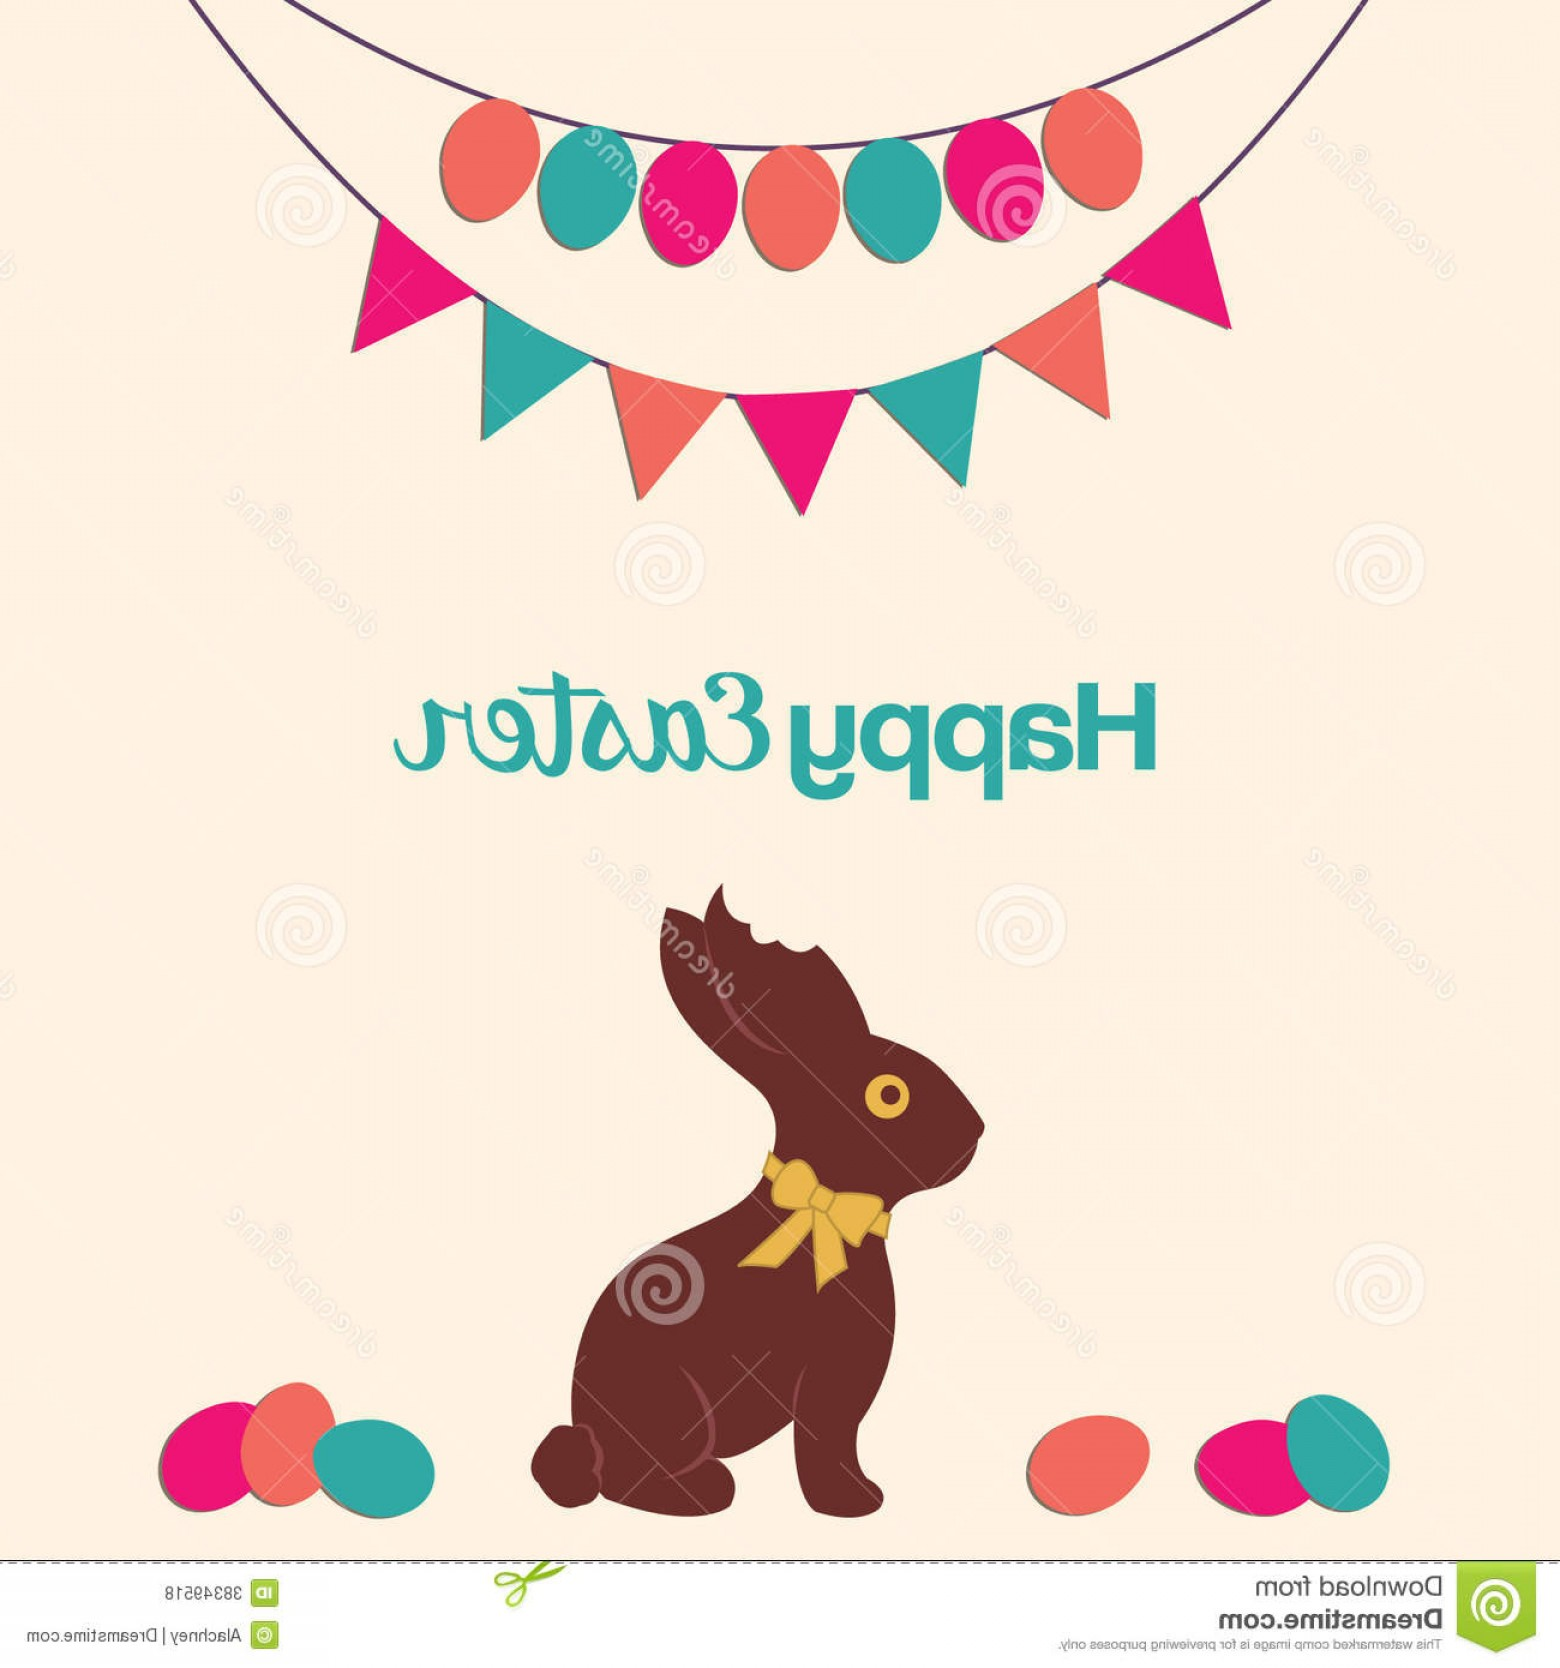 Chocolate Bunny Vector: Royalty Free Stock Photos Happy Easter Chocolate Bunny Vector Illustration Image